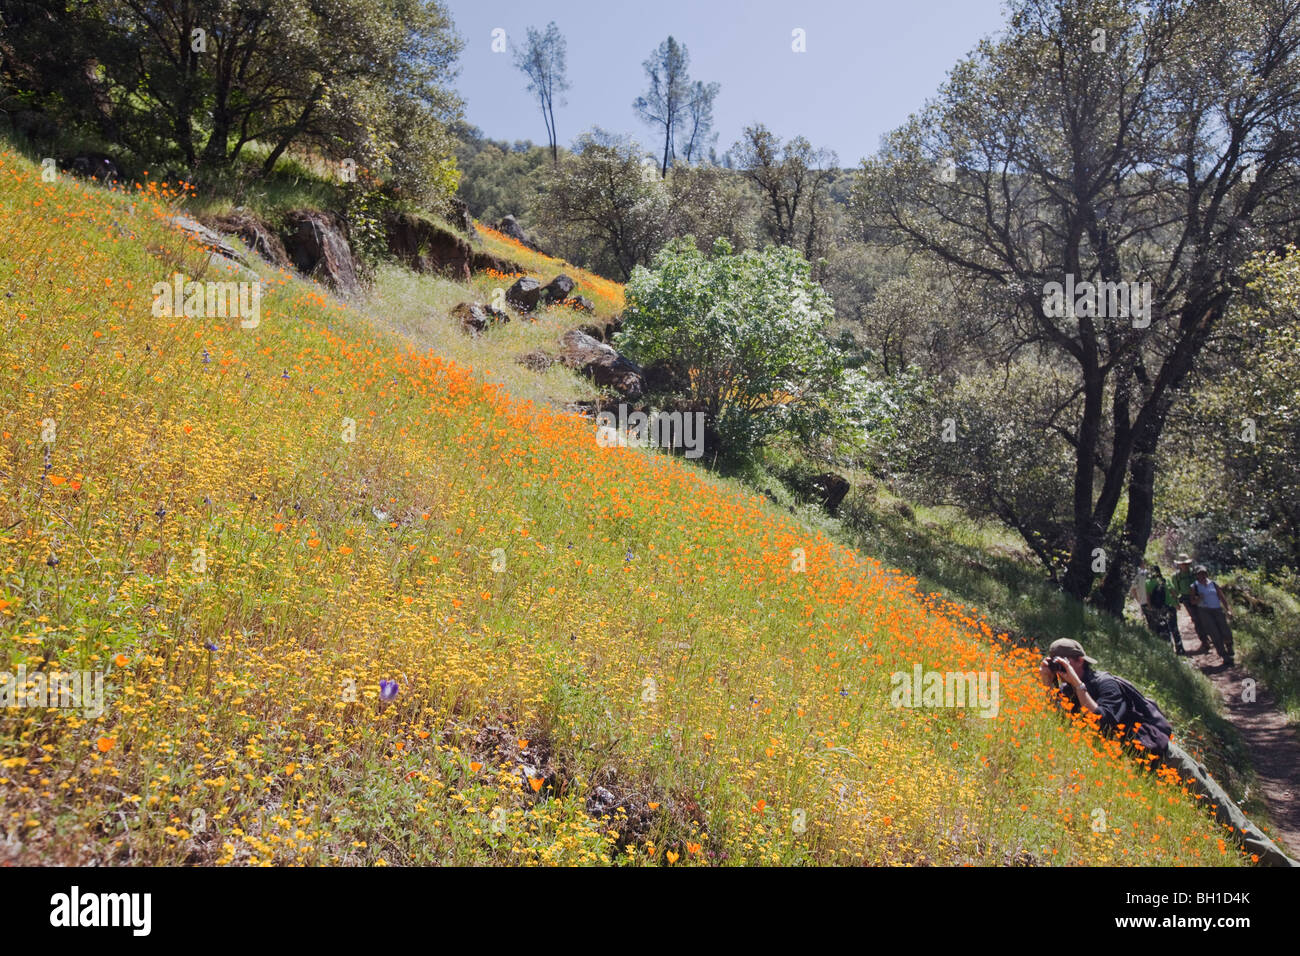 Photographer pauses on Hite Cove Trail beside the Merced River near Yosemite to photograph hillside full of wildflowers. - Stock Image